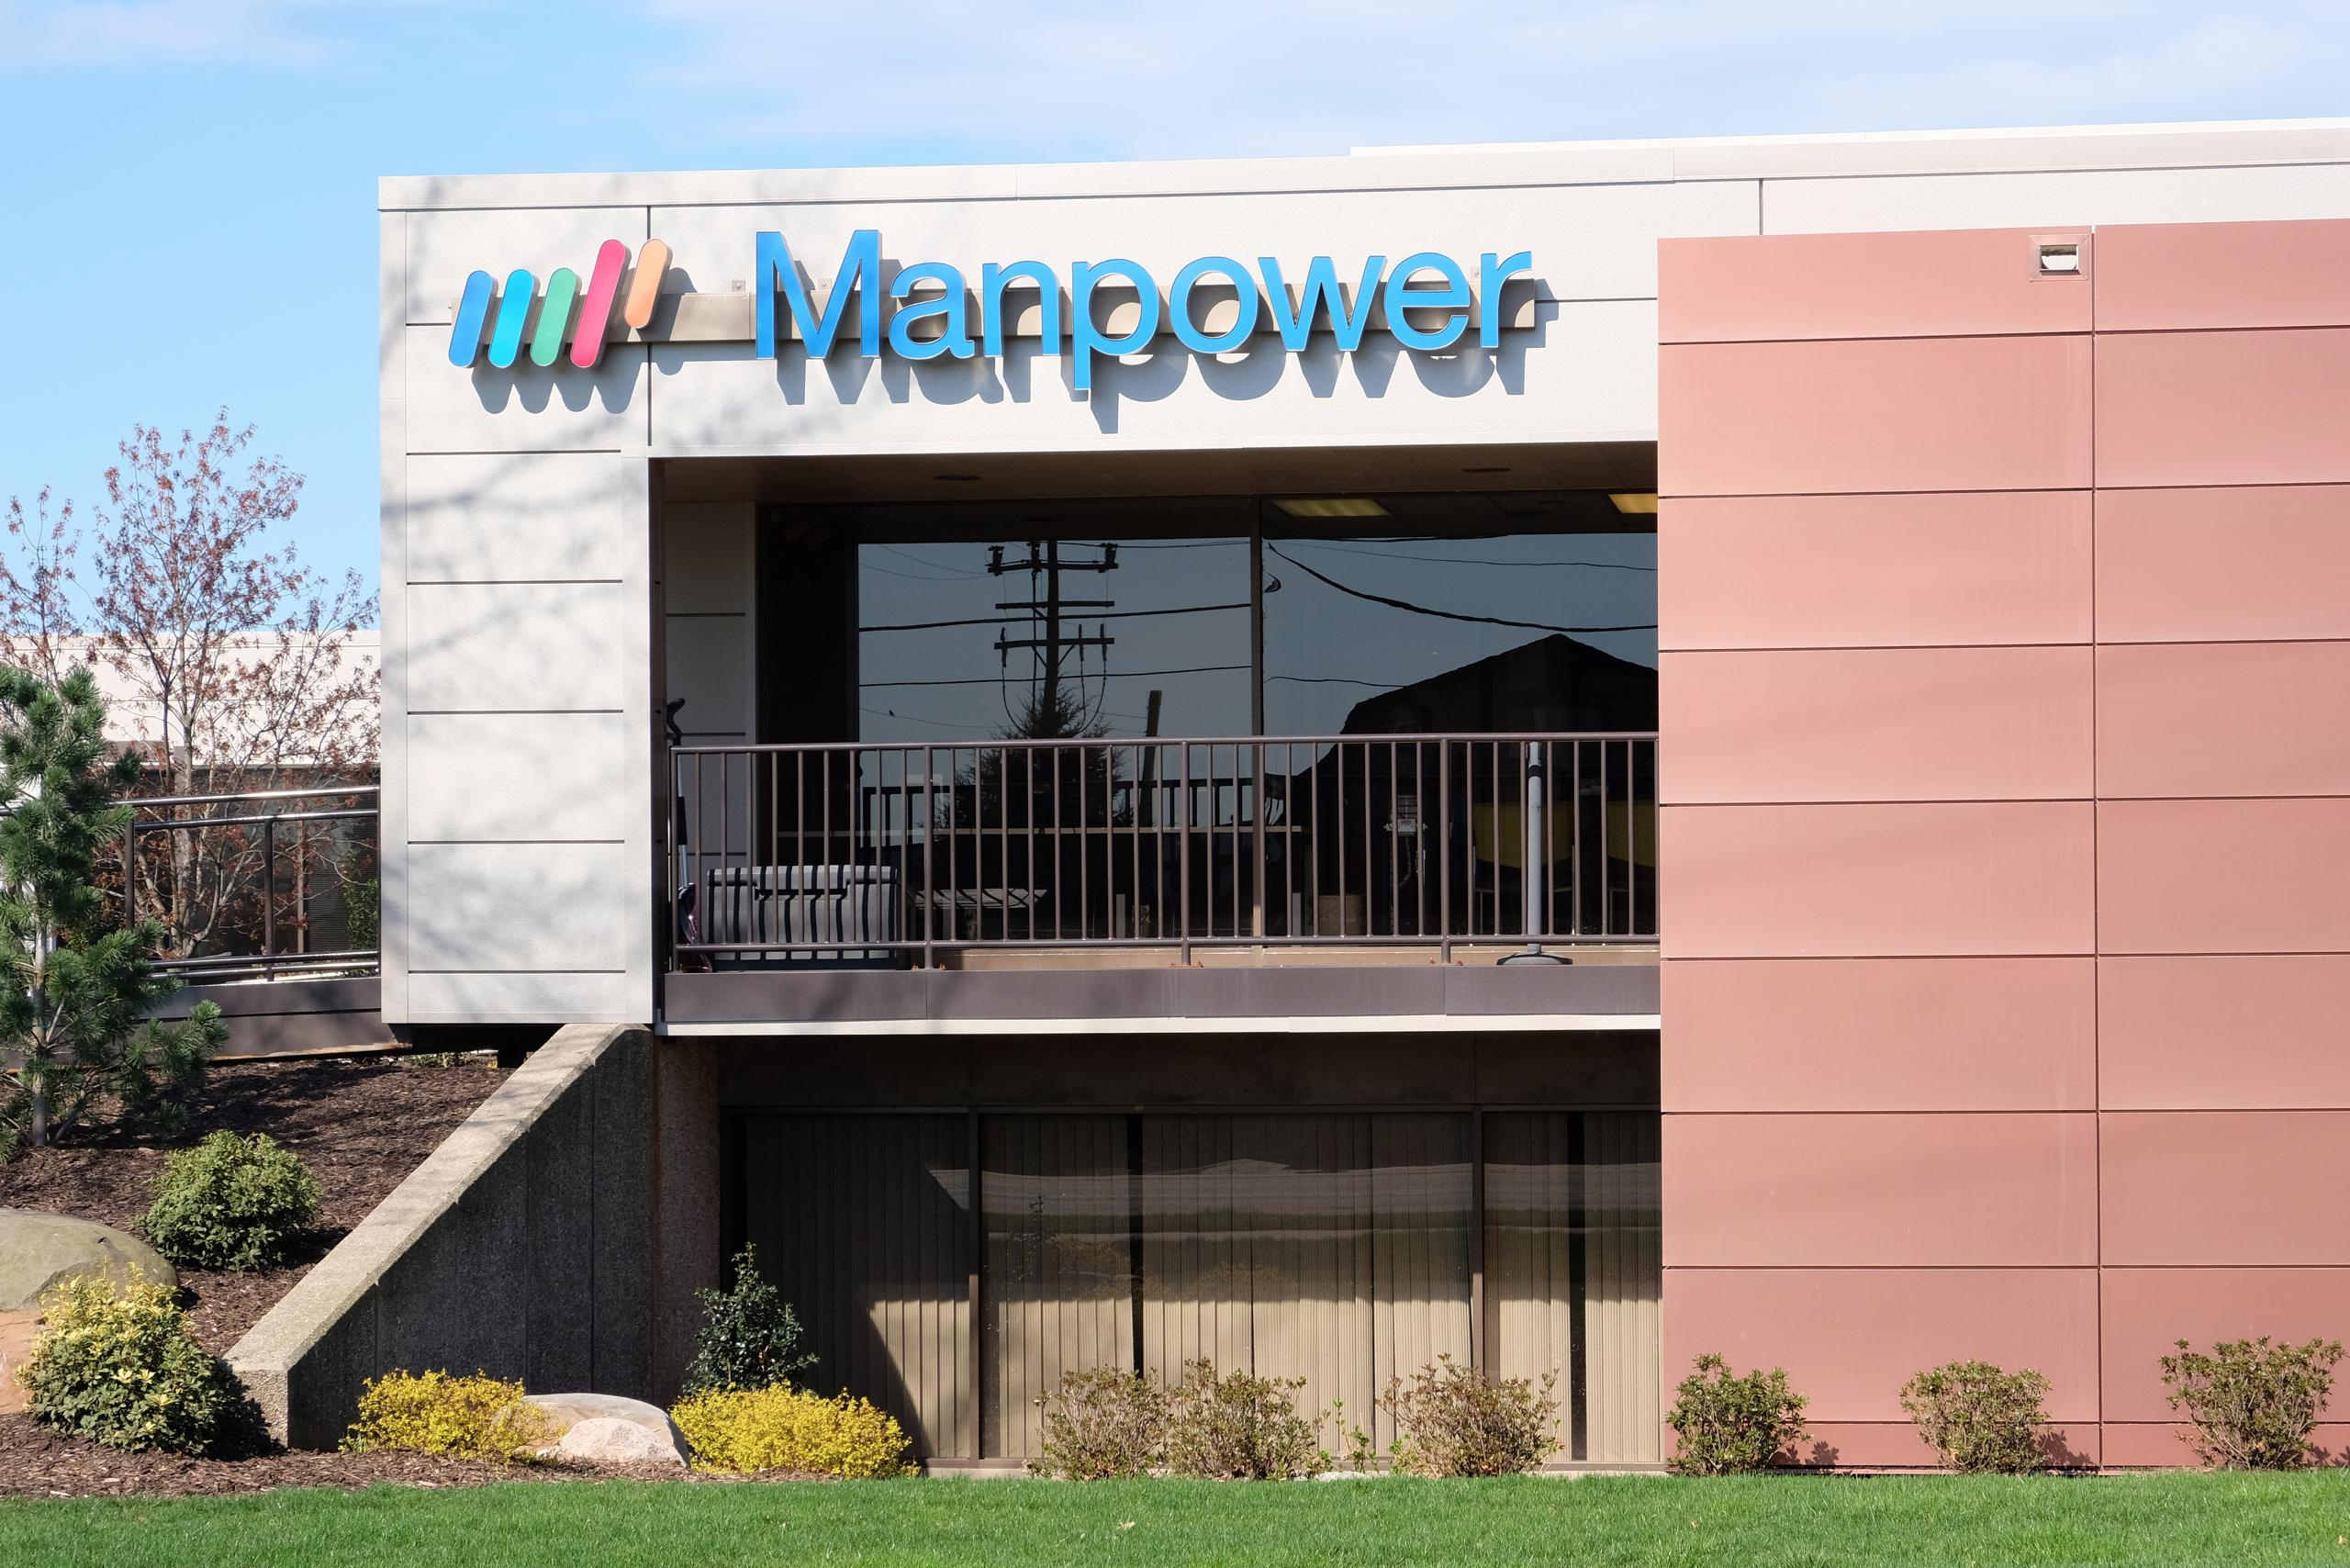 Manpower office in Zeeland, Michigan.